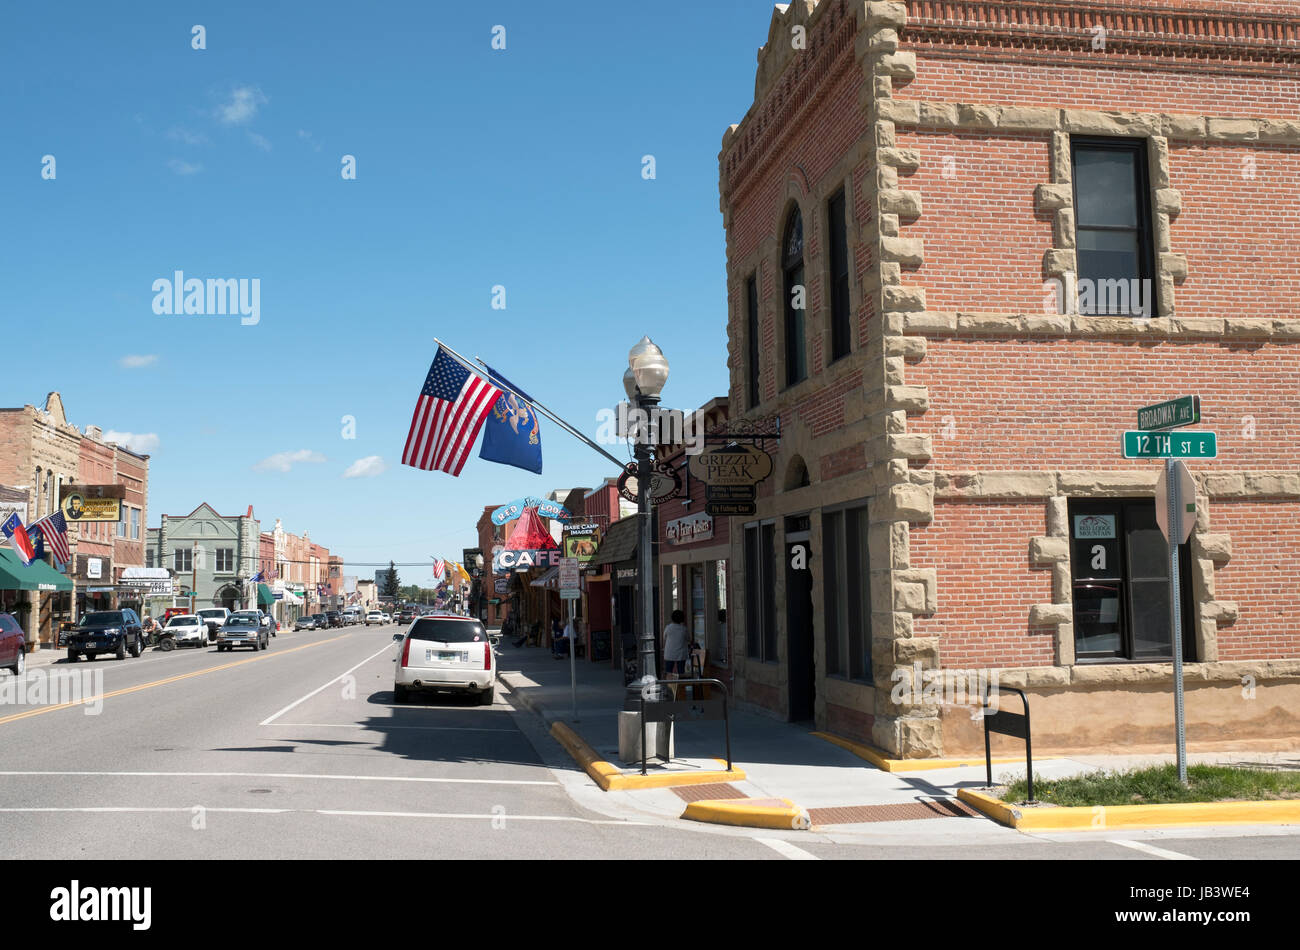 Red Lodge, Montana, United States. - Stock Image